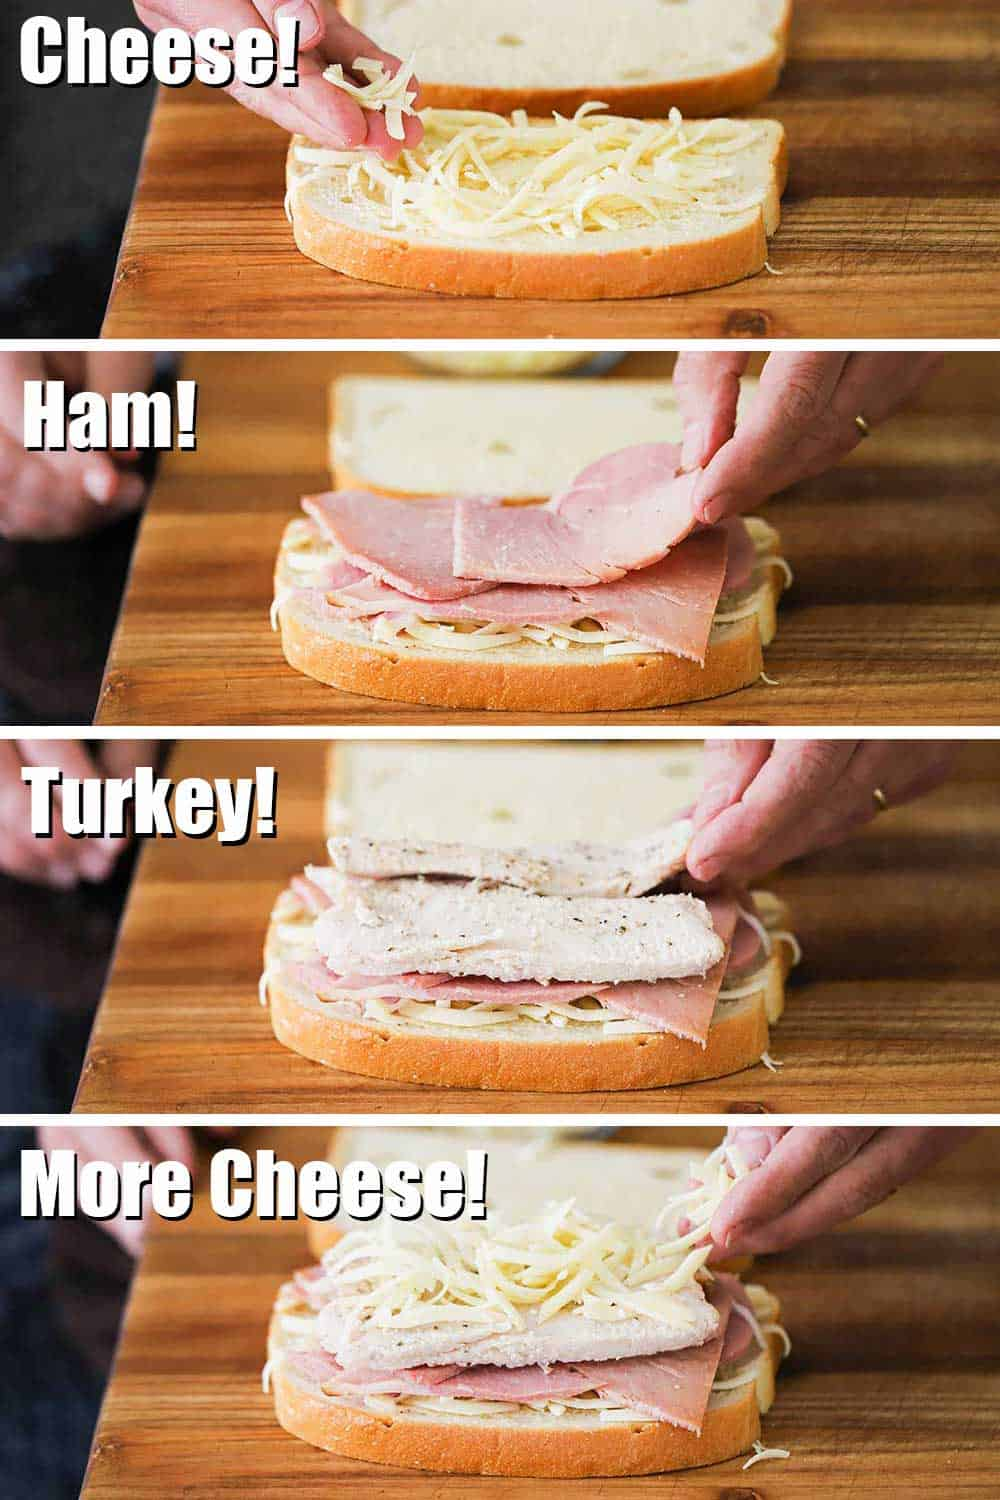 A four-layered process of adding mayo to a slice of bread, then a layer of sliced ham, then sliced turkey, then another layer of shredded cheese.